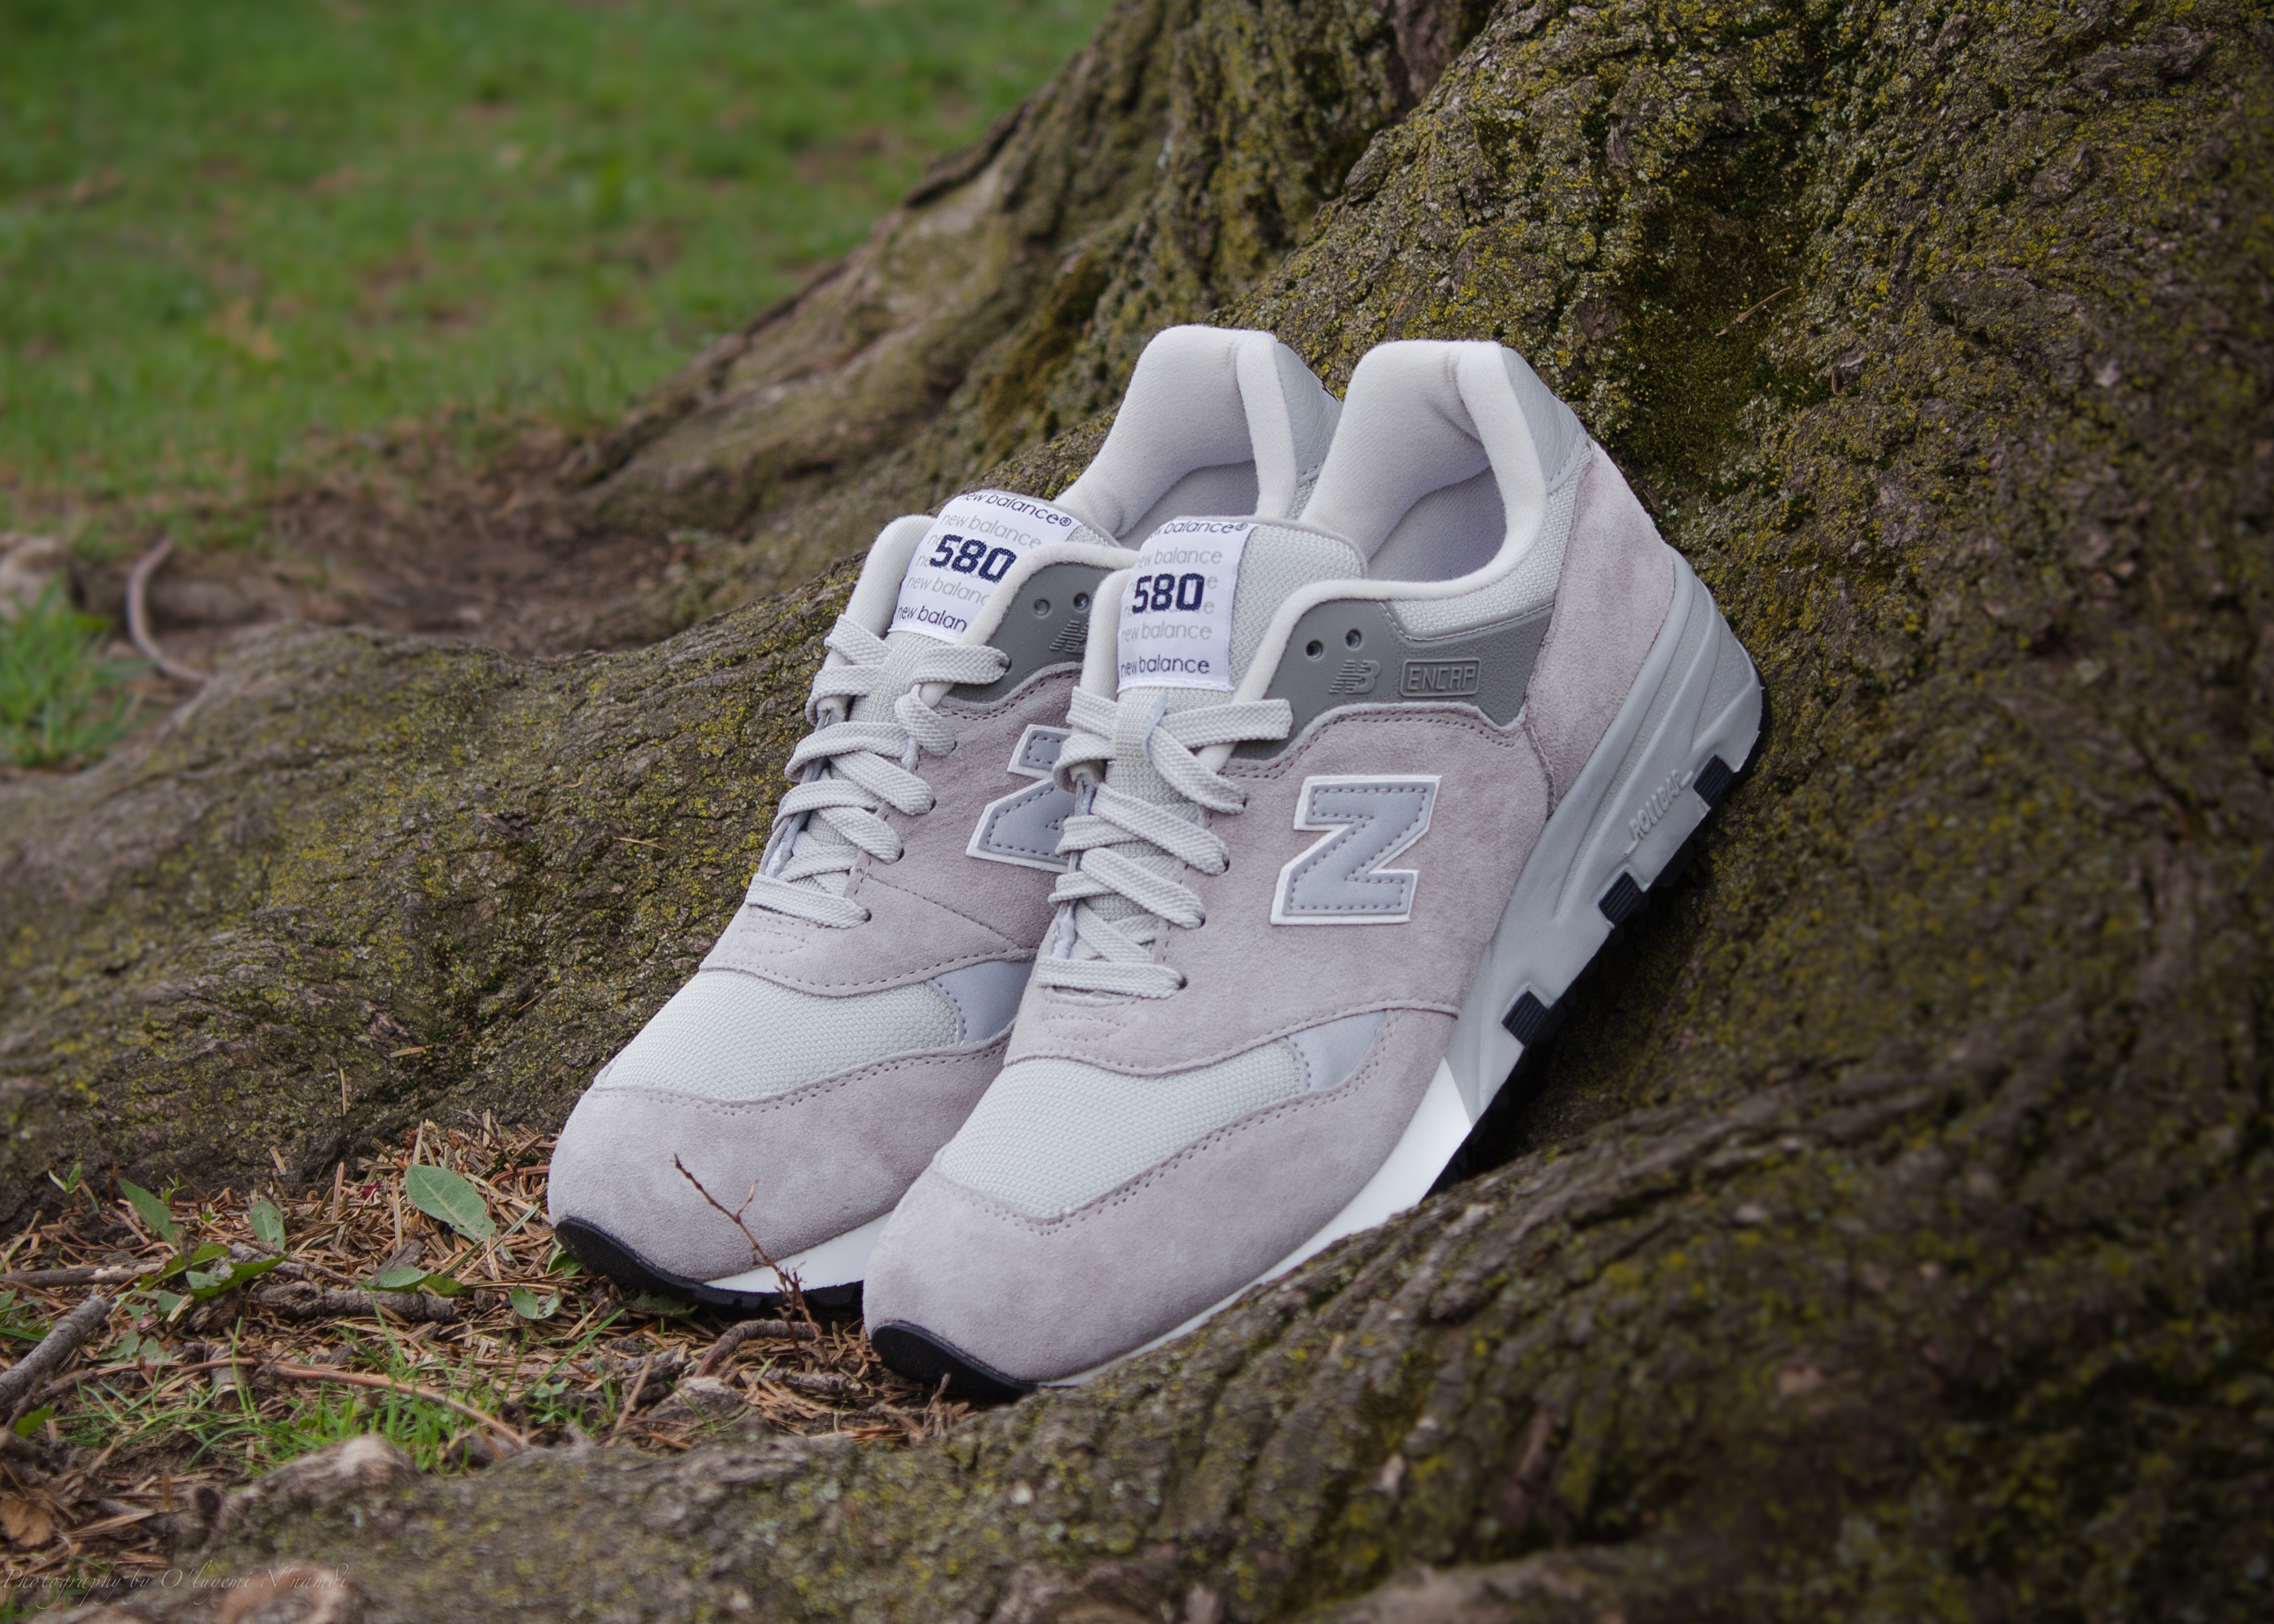 Not to be confused with the New Balance MT580, the CM580GR features a luxurious mix of grey pigskin suede on the upper with white accents.